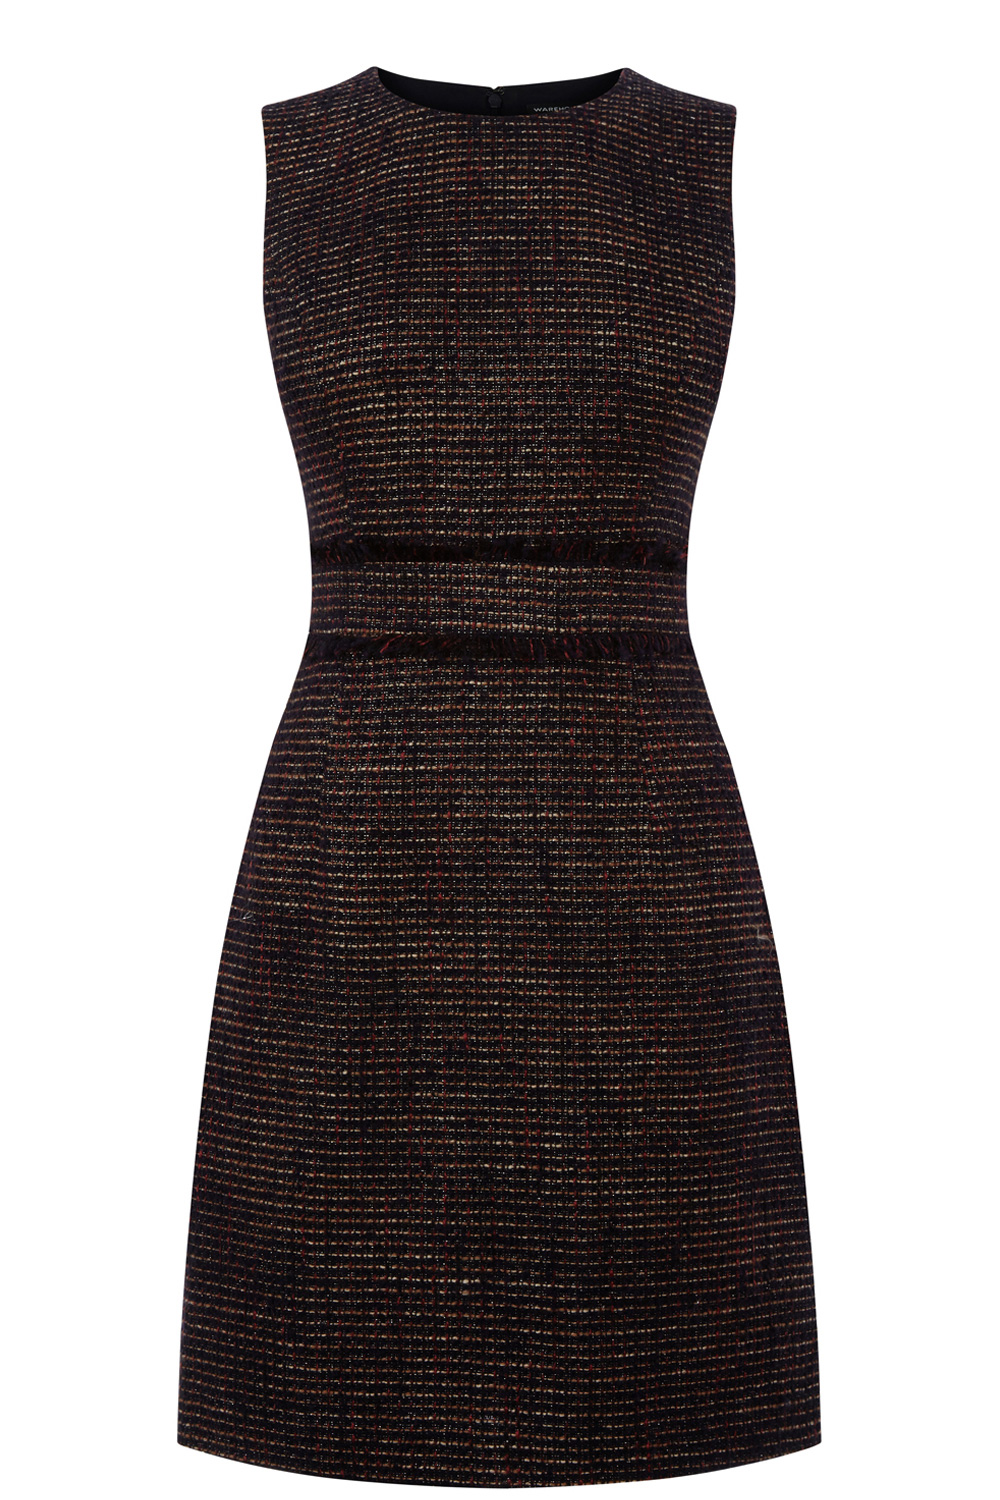 Waist Detail Tweed Shift Dress.jpg